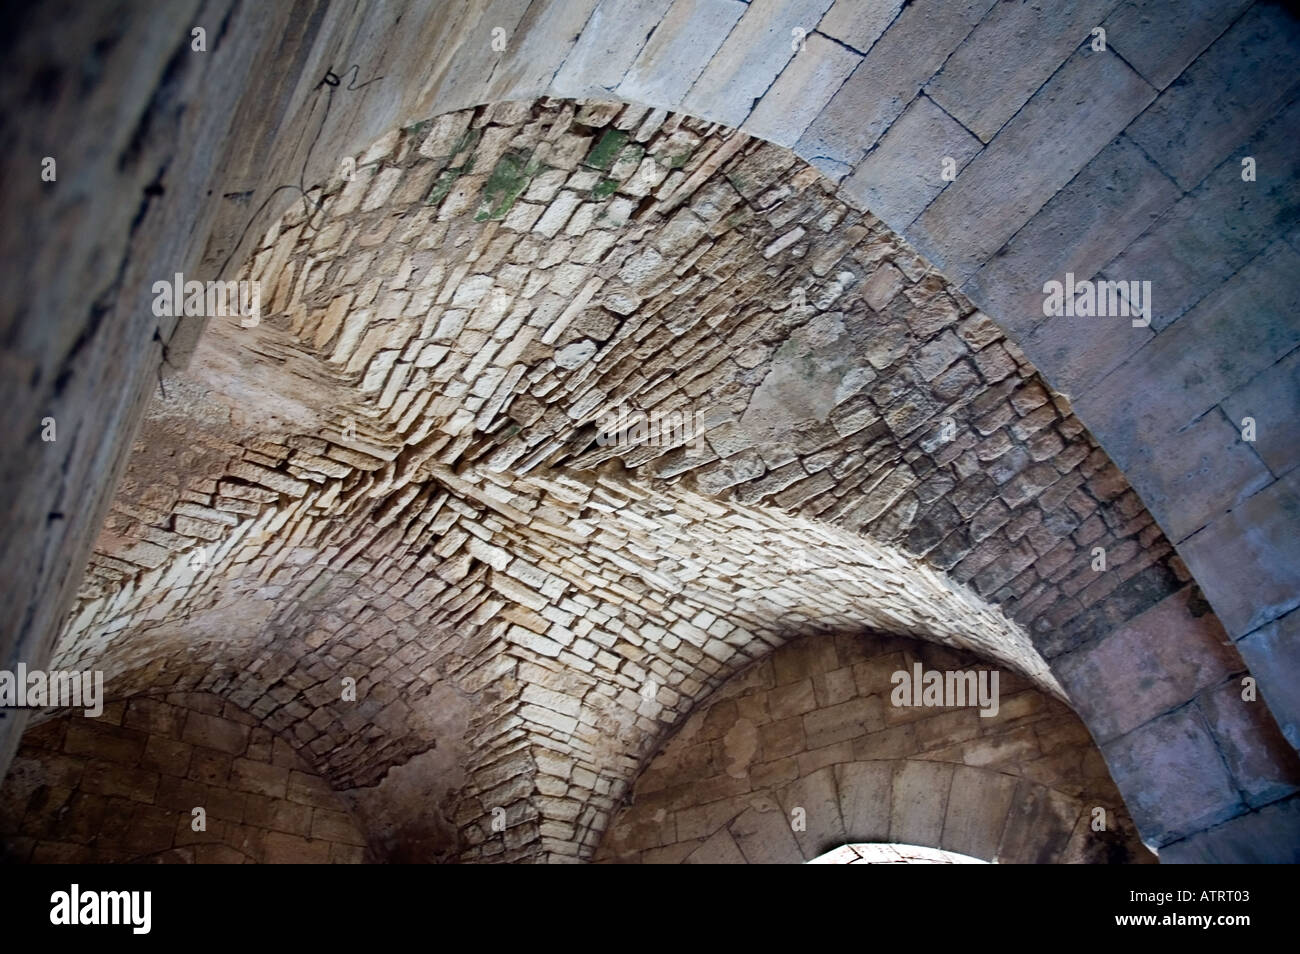 High vaulted gothic style arched ceilings and stone doorways, Crac des Chavaliers, Syria, Middle East. DSC_6053 - Stock Image